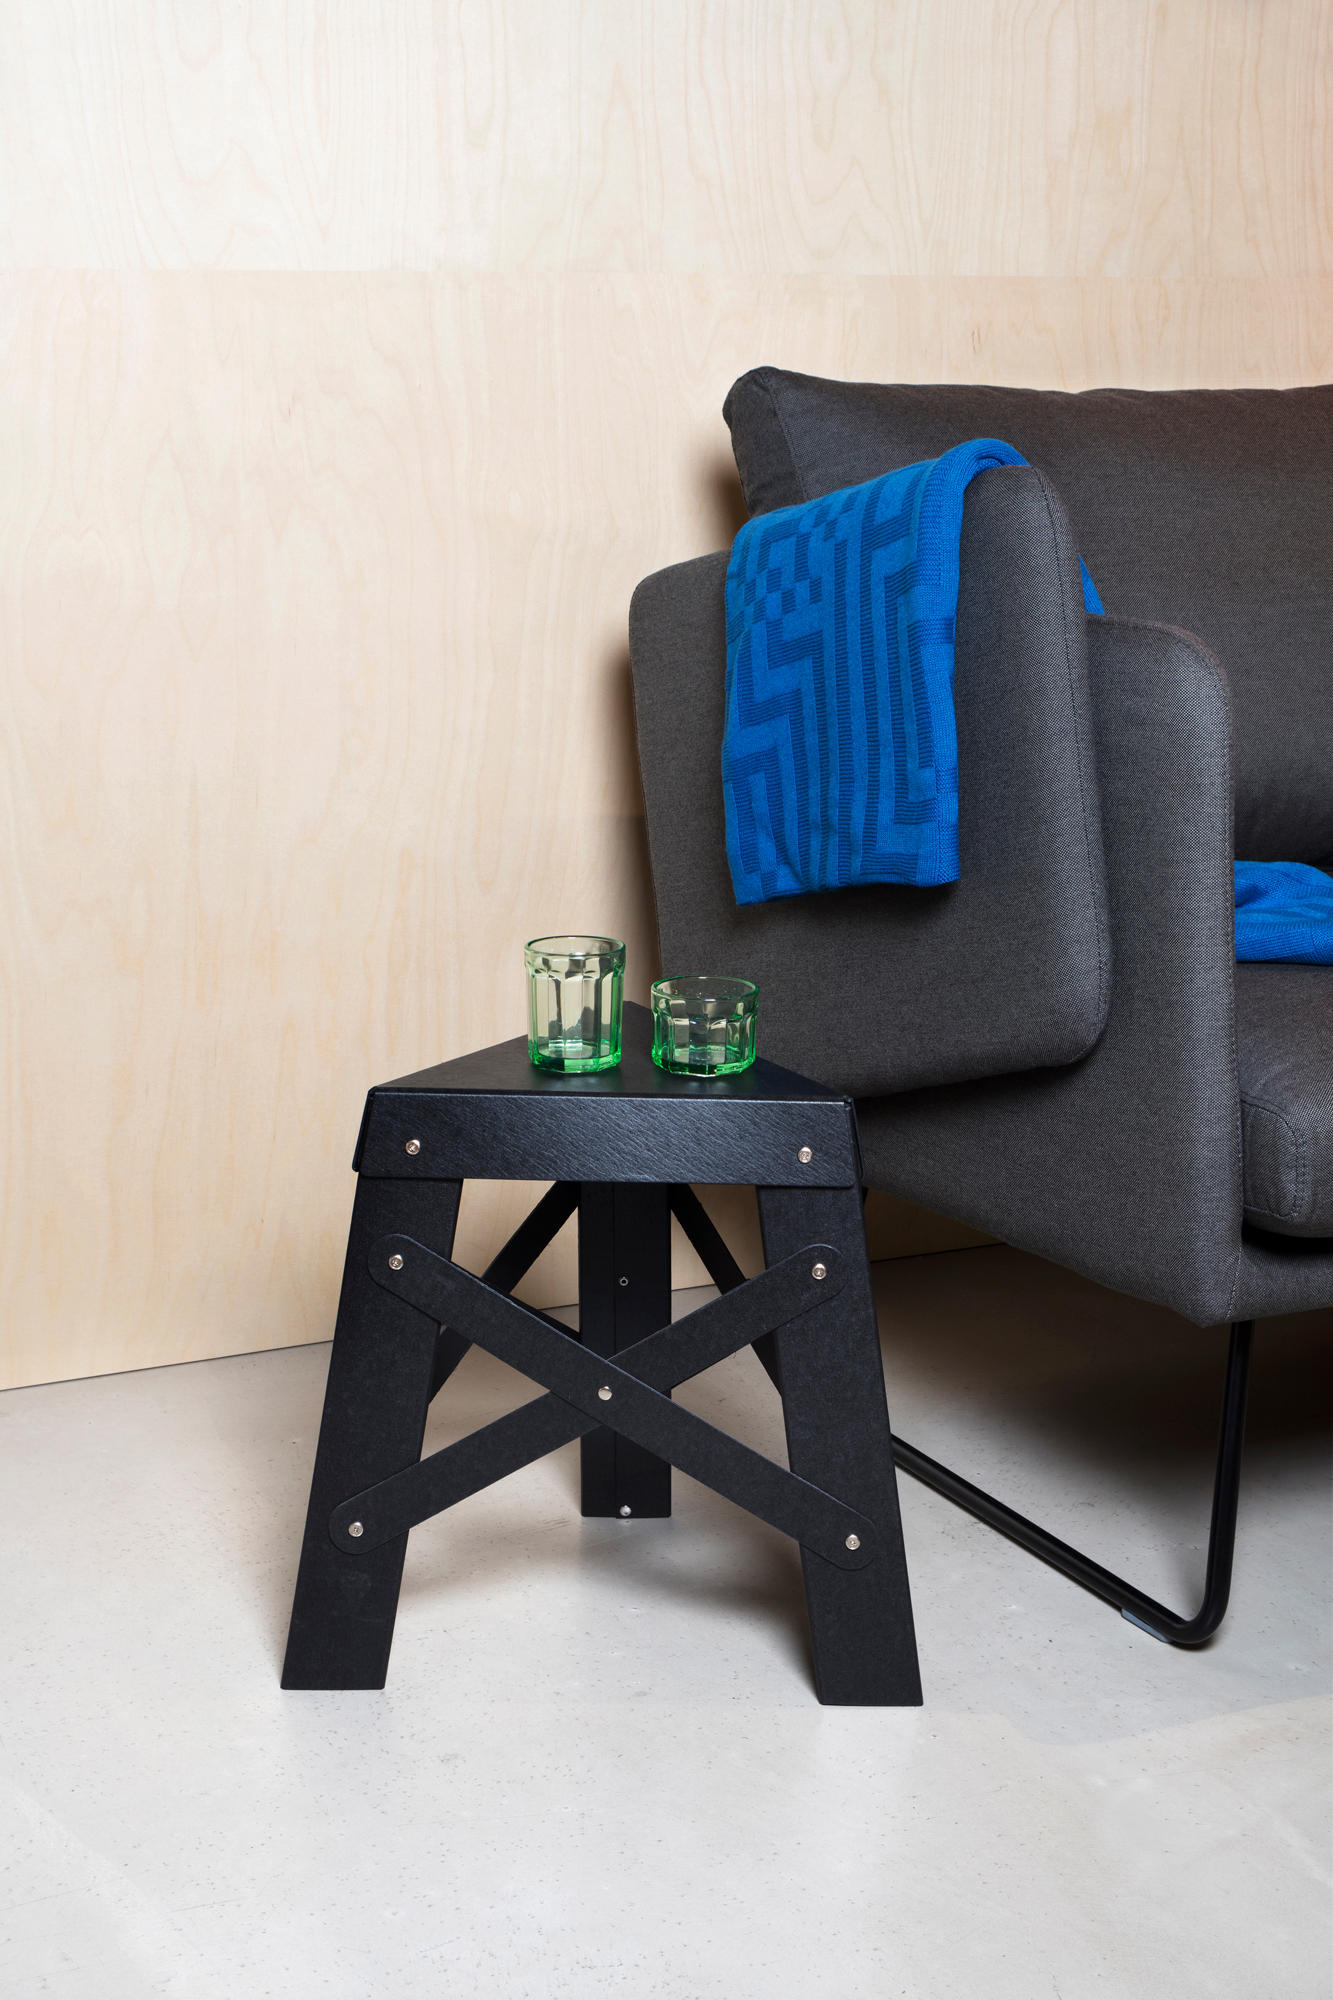 Eifel Paper Ottomans From Rs Barcelona Architonic